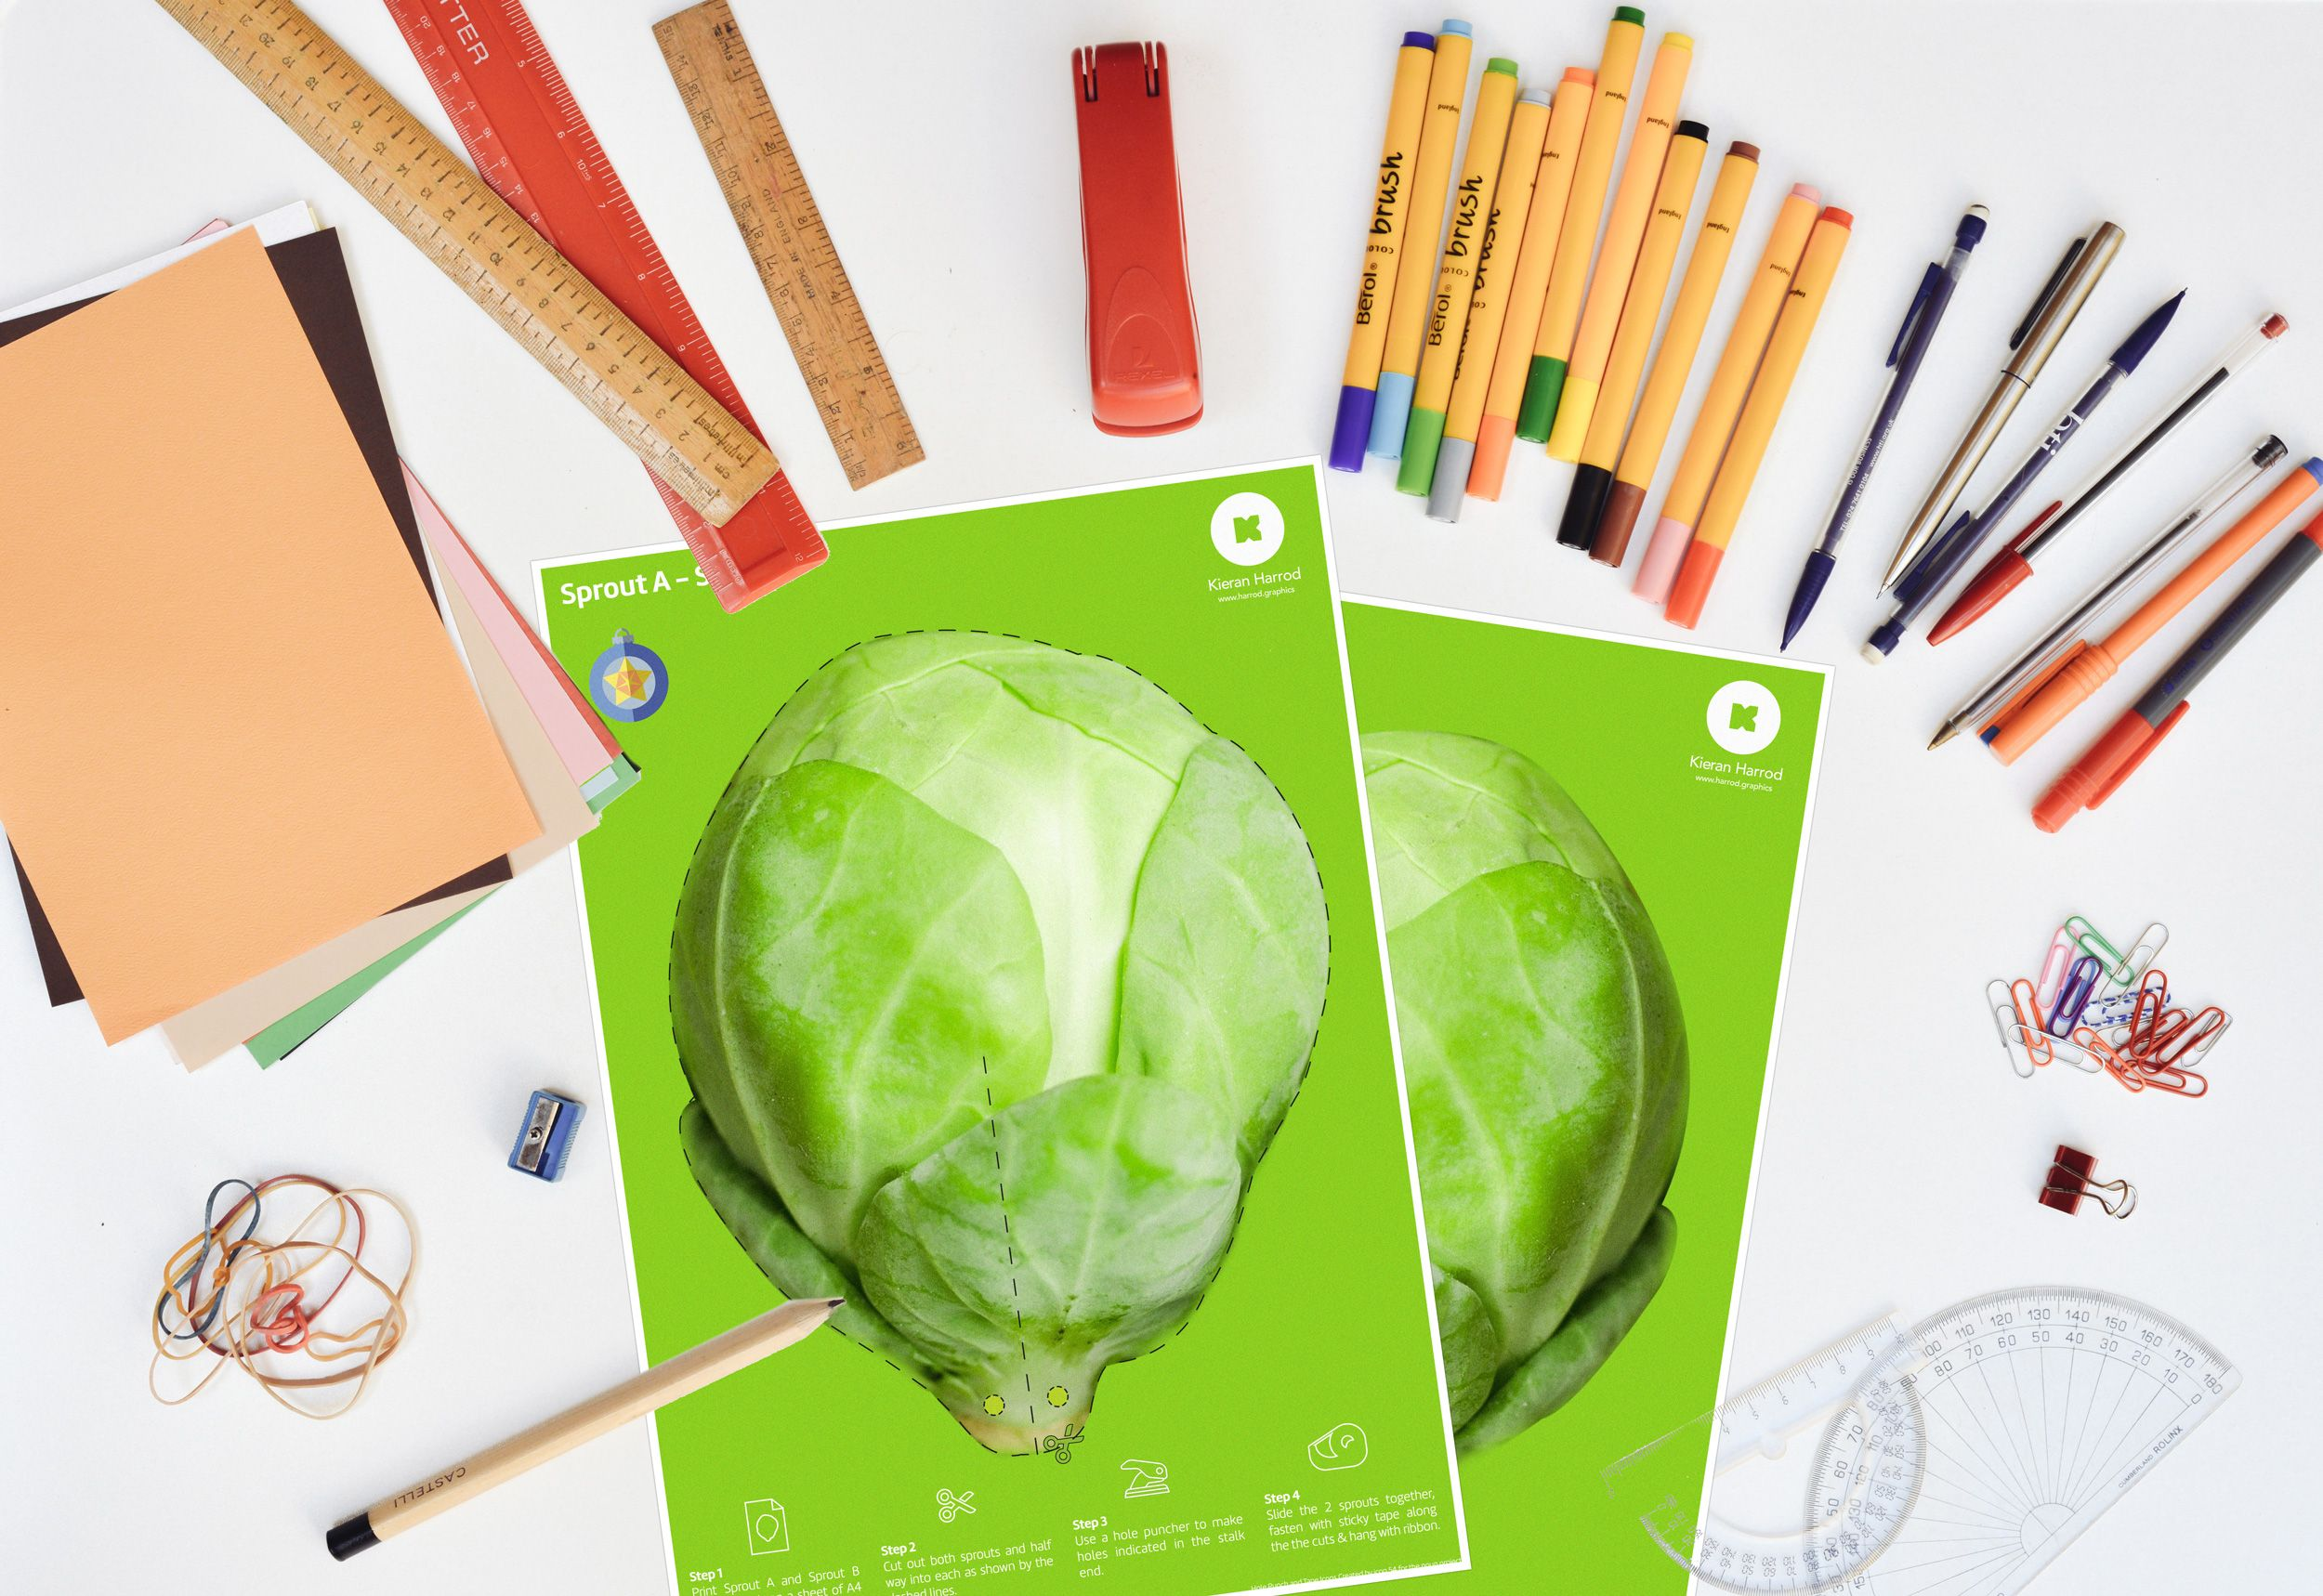 Festive Hanging Sprout Printable  A little seasonal treat for the festive period!  Download and print your very own hanging sprout decoration!  http://derby.graphics/festive-hanging-sprout-printable